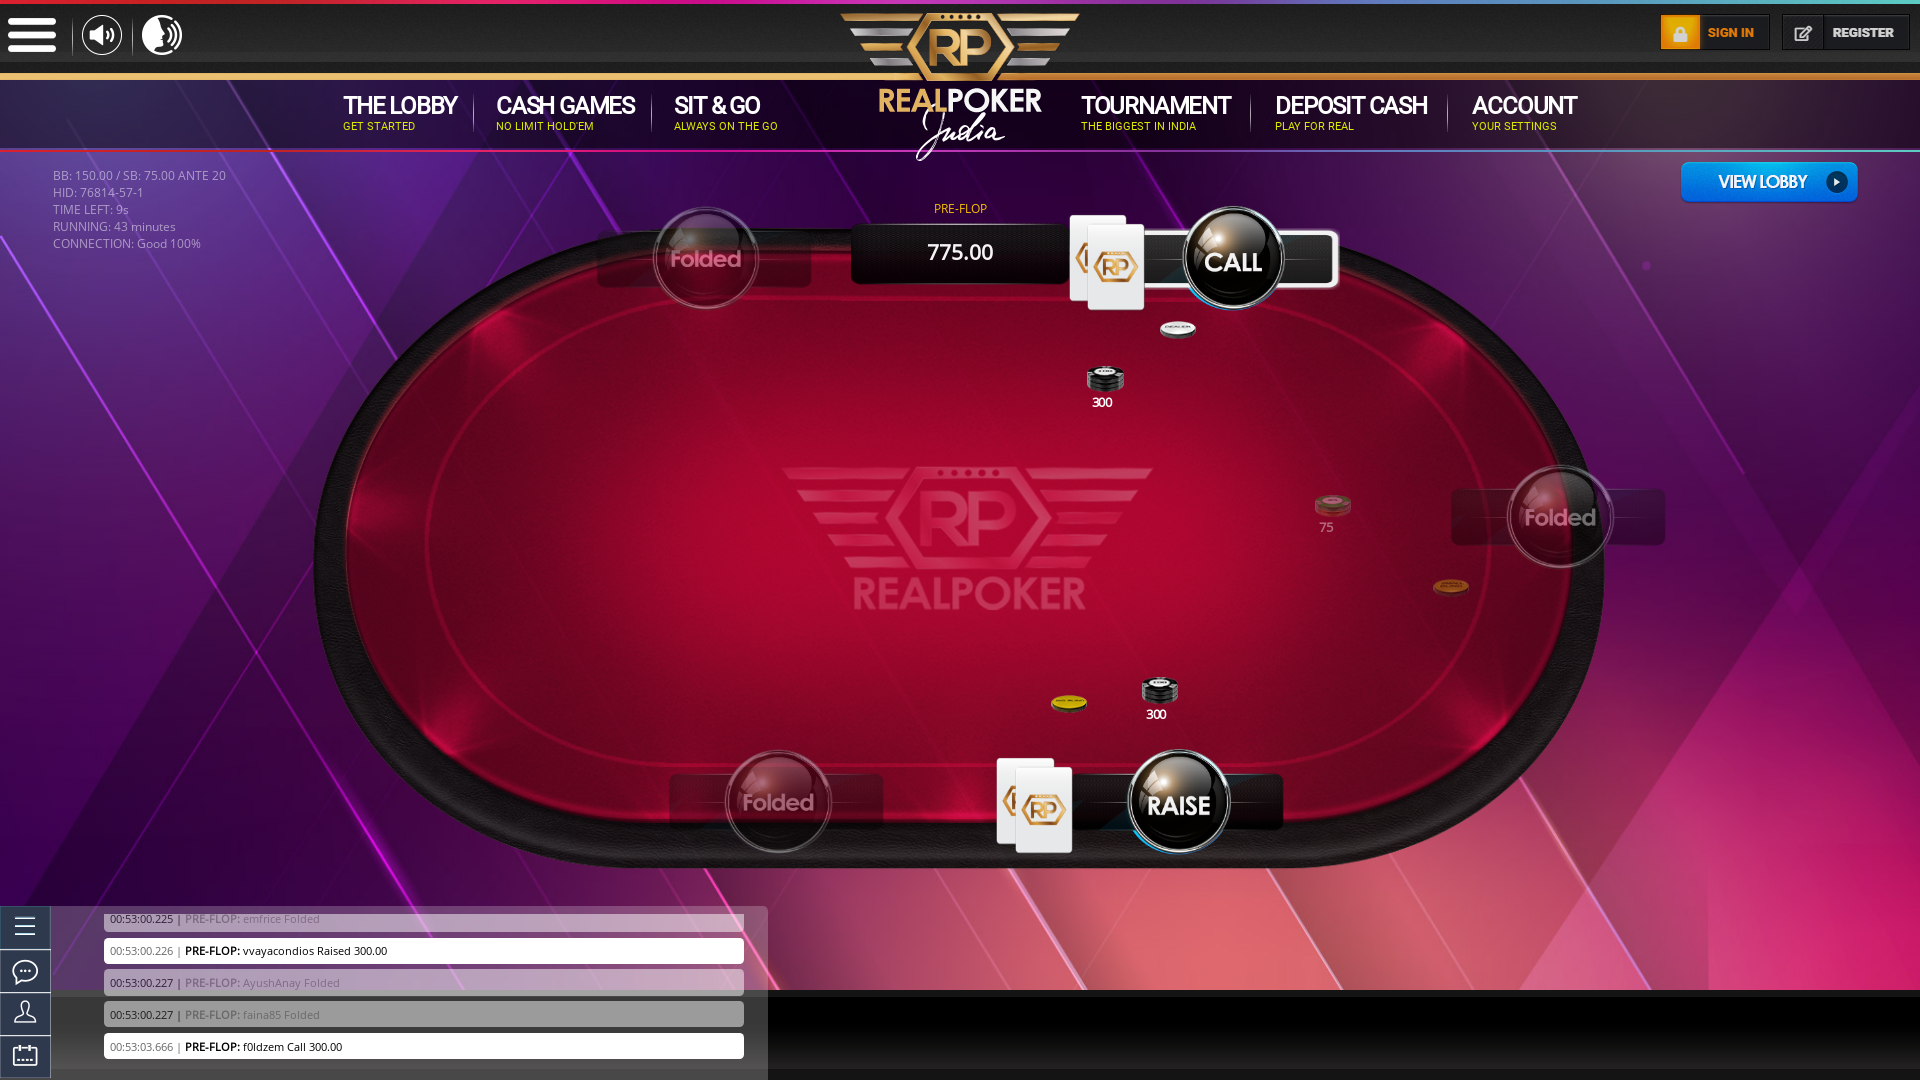 10 player texas holdem table at real poker with the table id 76814